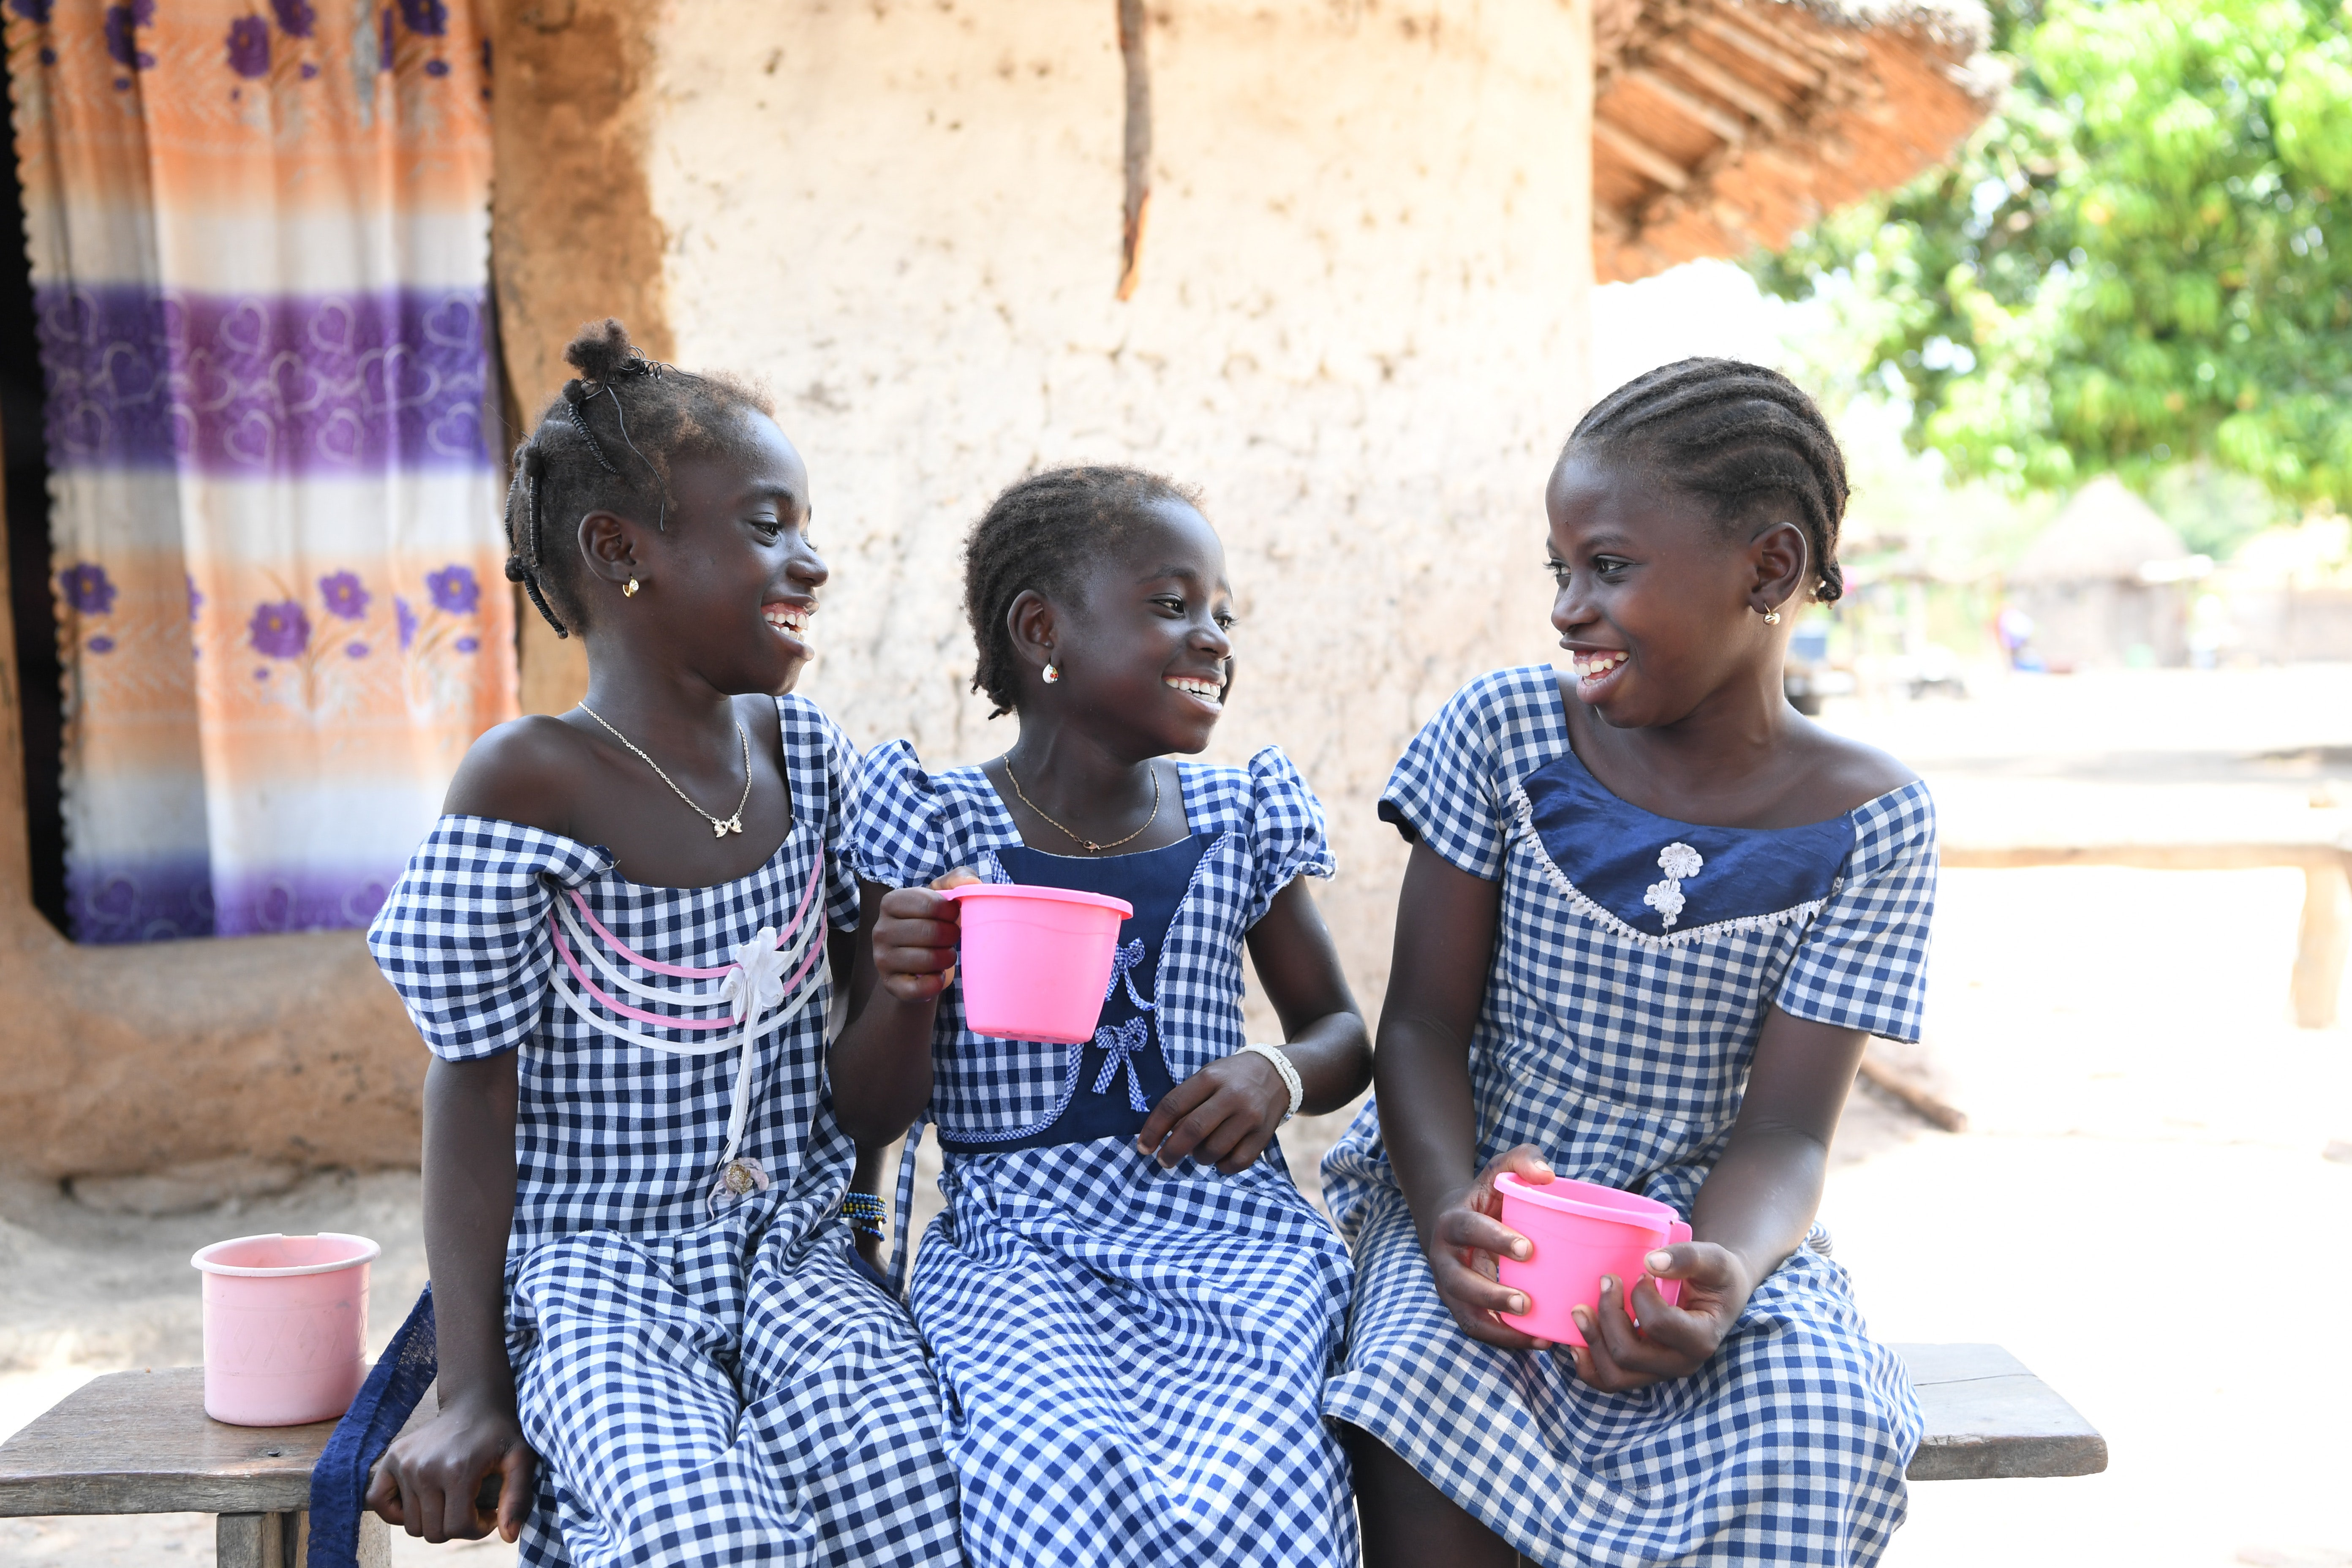 School girls in the North East of Côte d'Ivoire. (L-R) Fanta, Nawa and Karidja. Fanta wants to become a doctor, Nawa a teacher and Karidja a professor | Source: UNICEF/UN061567/Dejongh